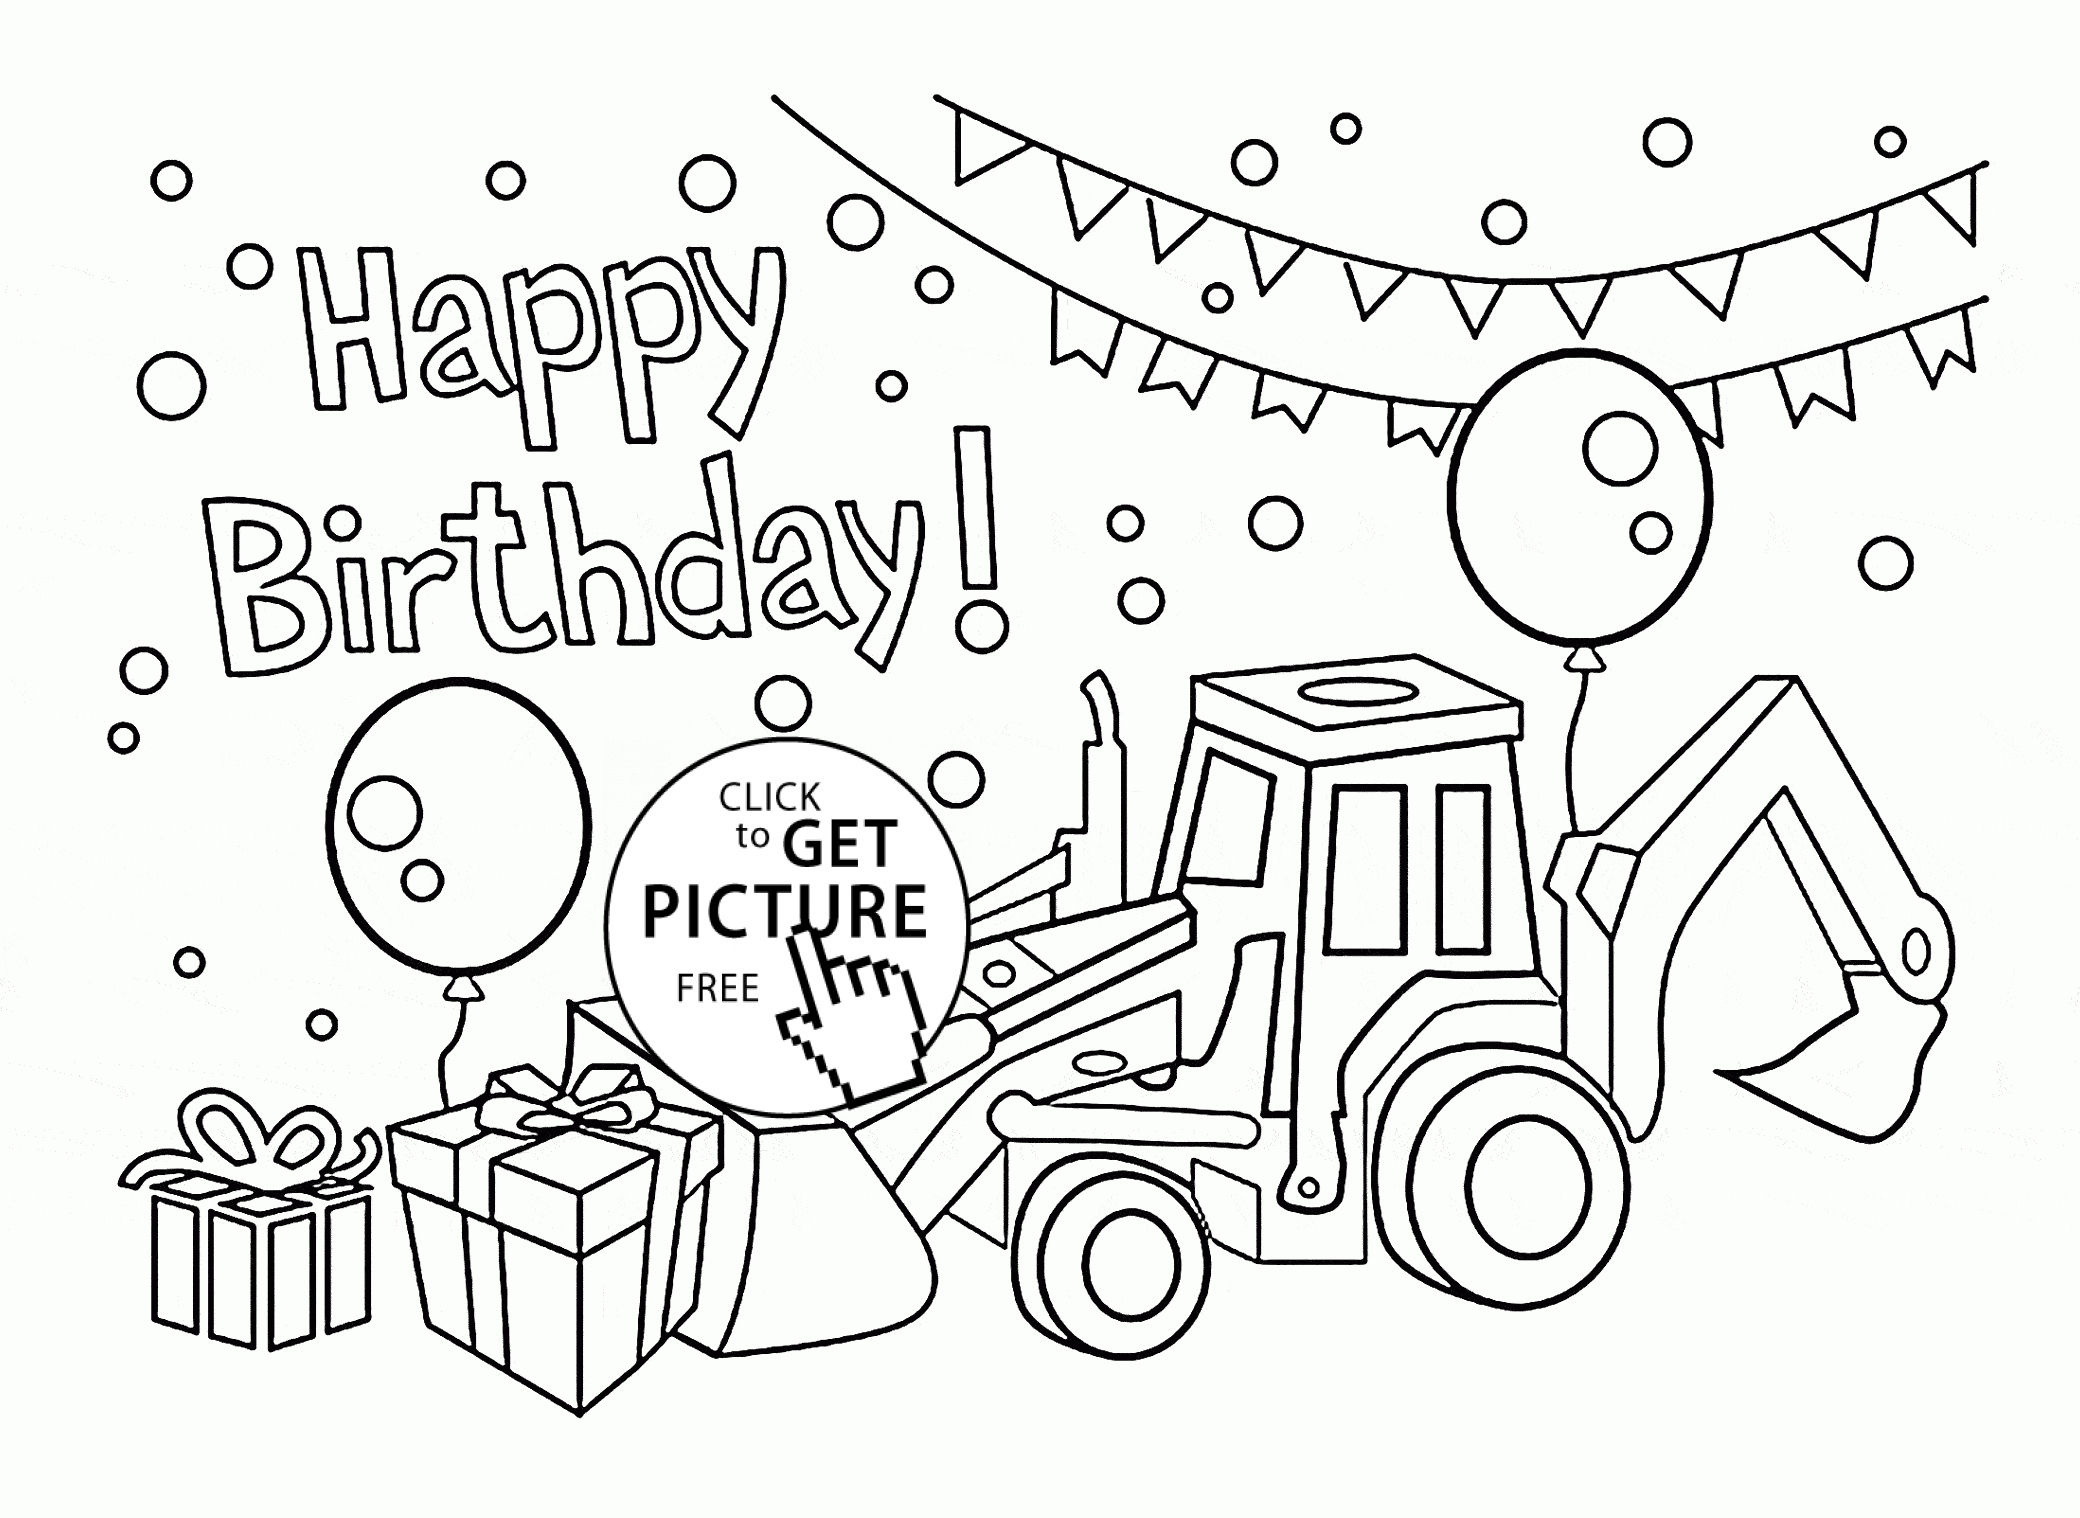 Coloring Pages : Coloring Pages Printableday Picture Inspirations - Free Printable Birthday Cards To Color